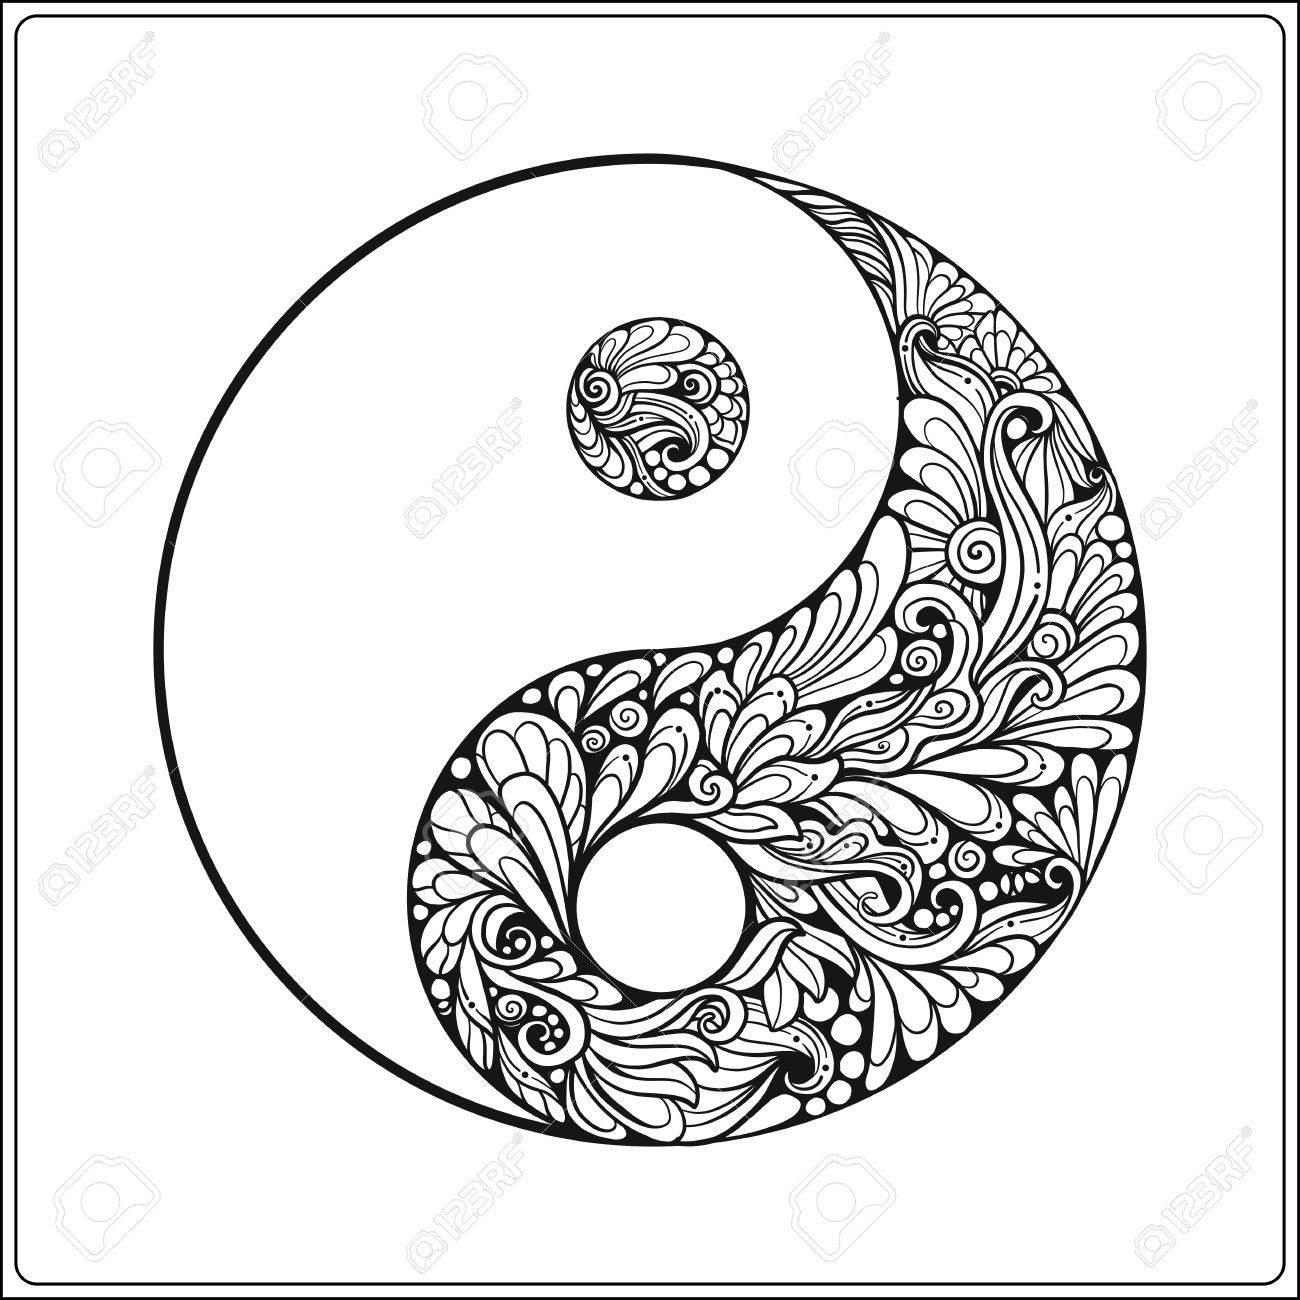 Symbol Of Yin And Yang In Gold On Black Background Coloring